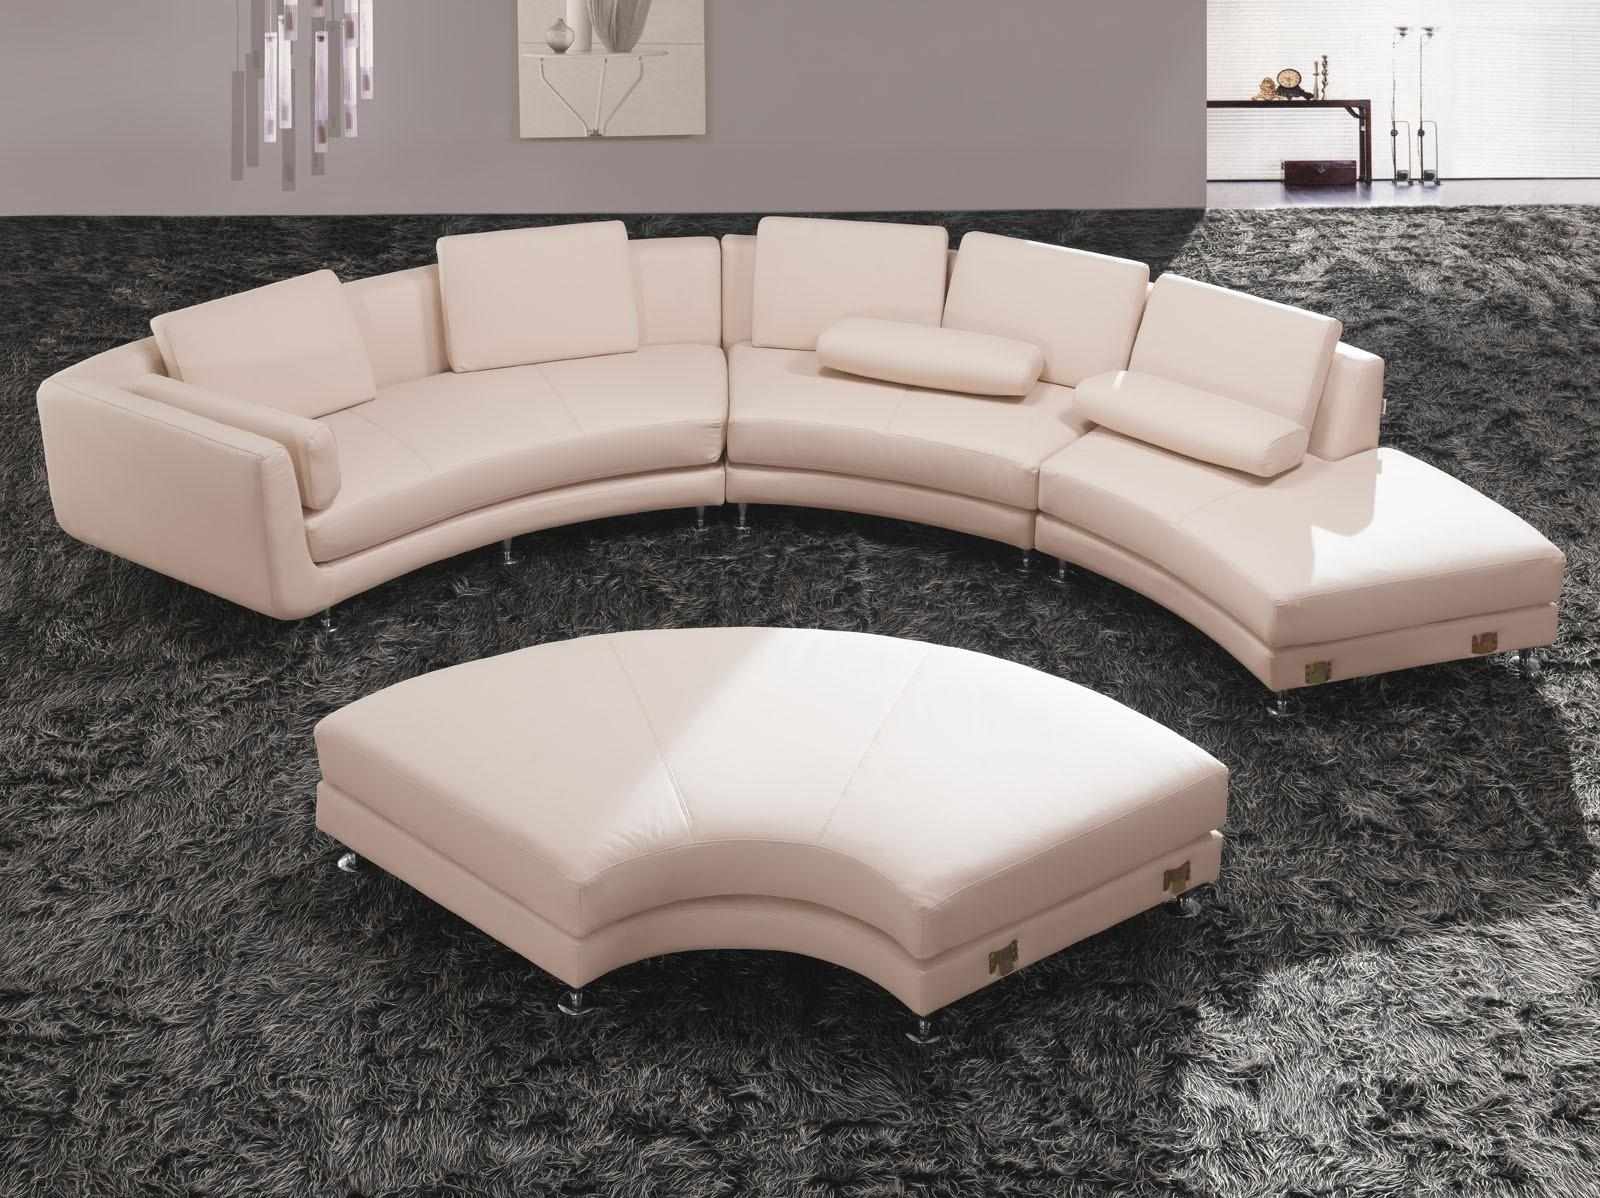 2018 Latest Small Curved Sectional Sofas Sofa Ideas